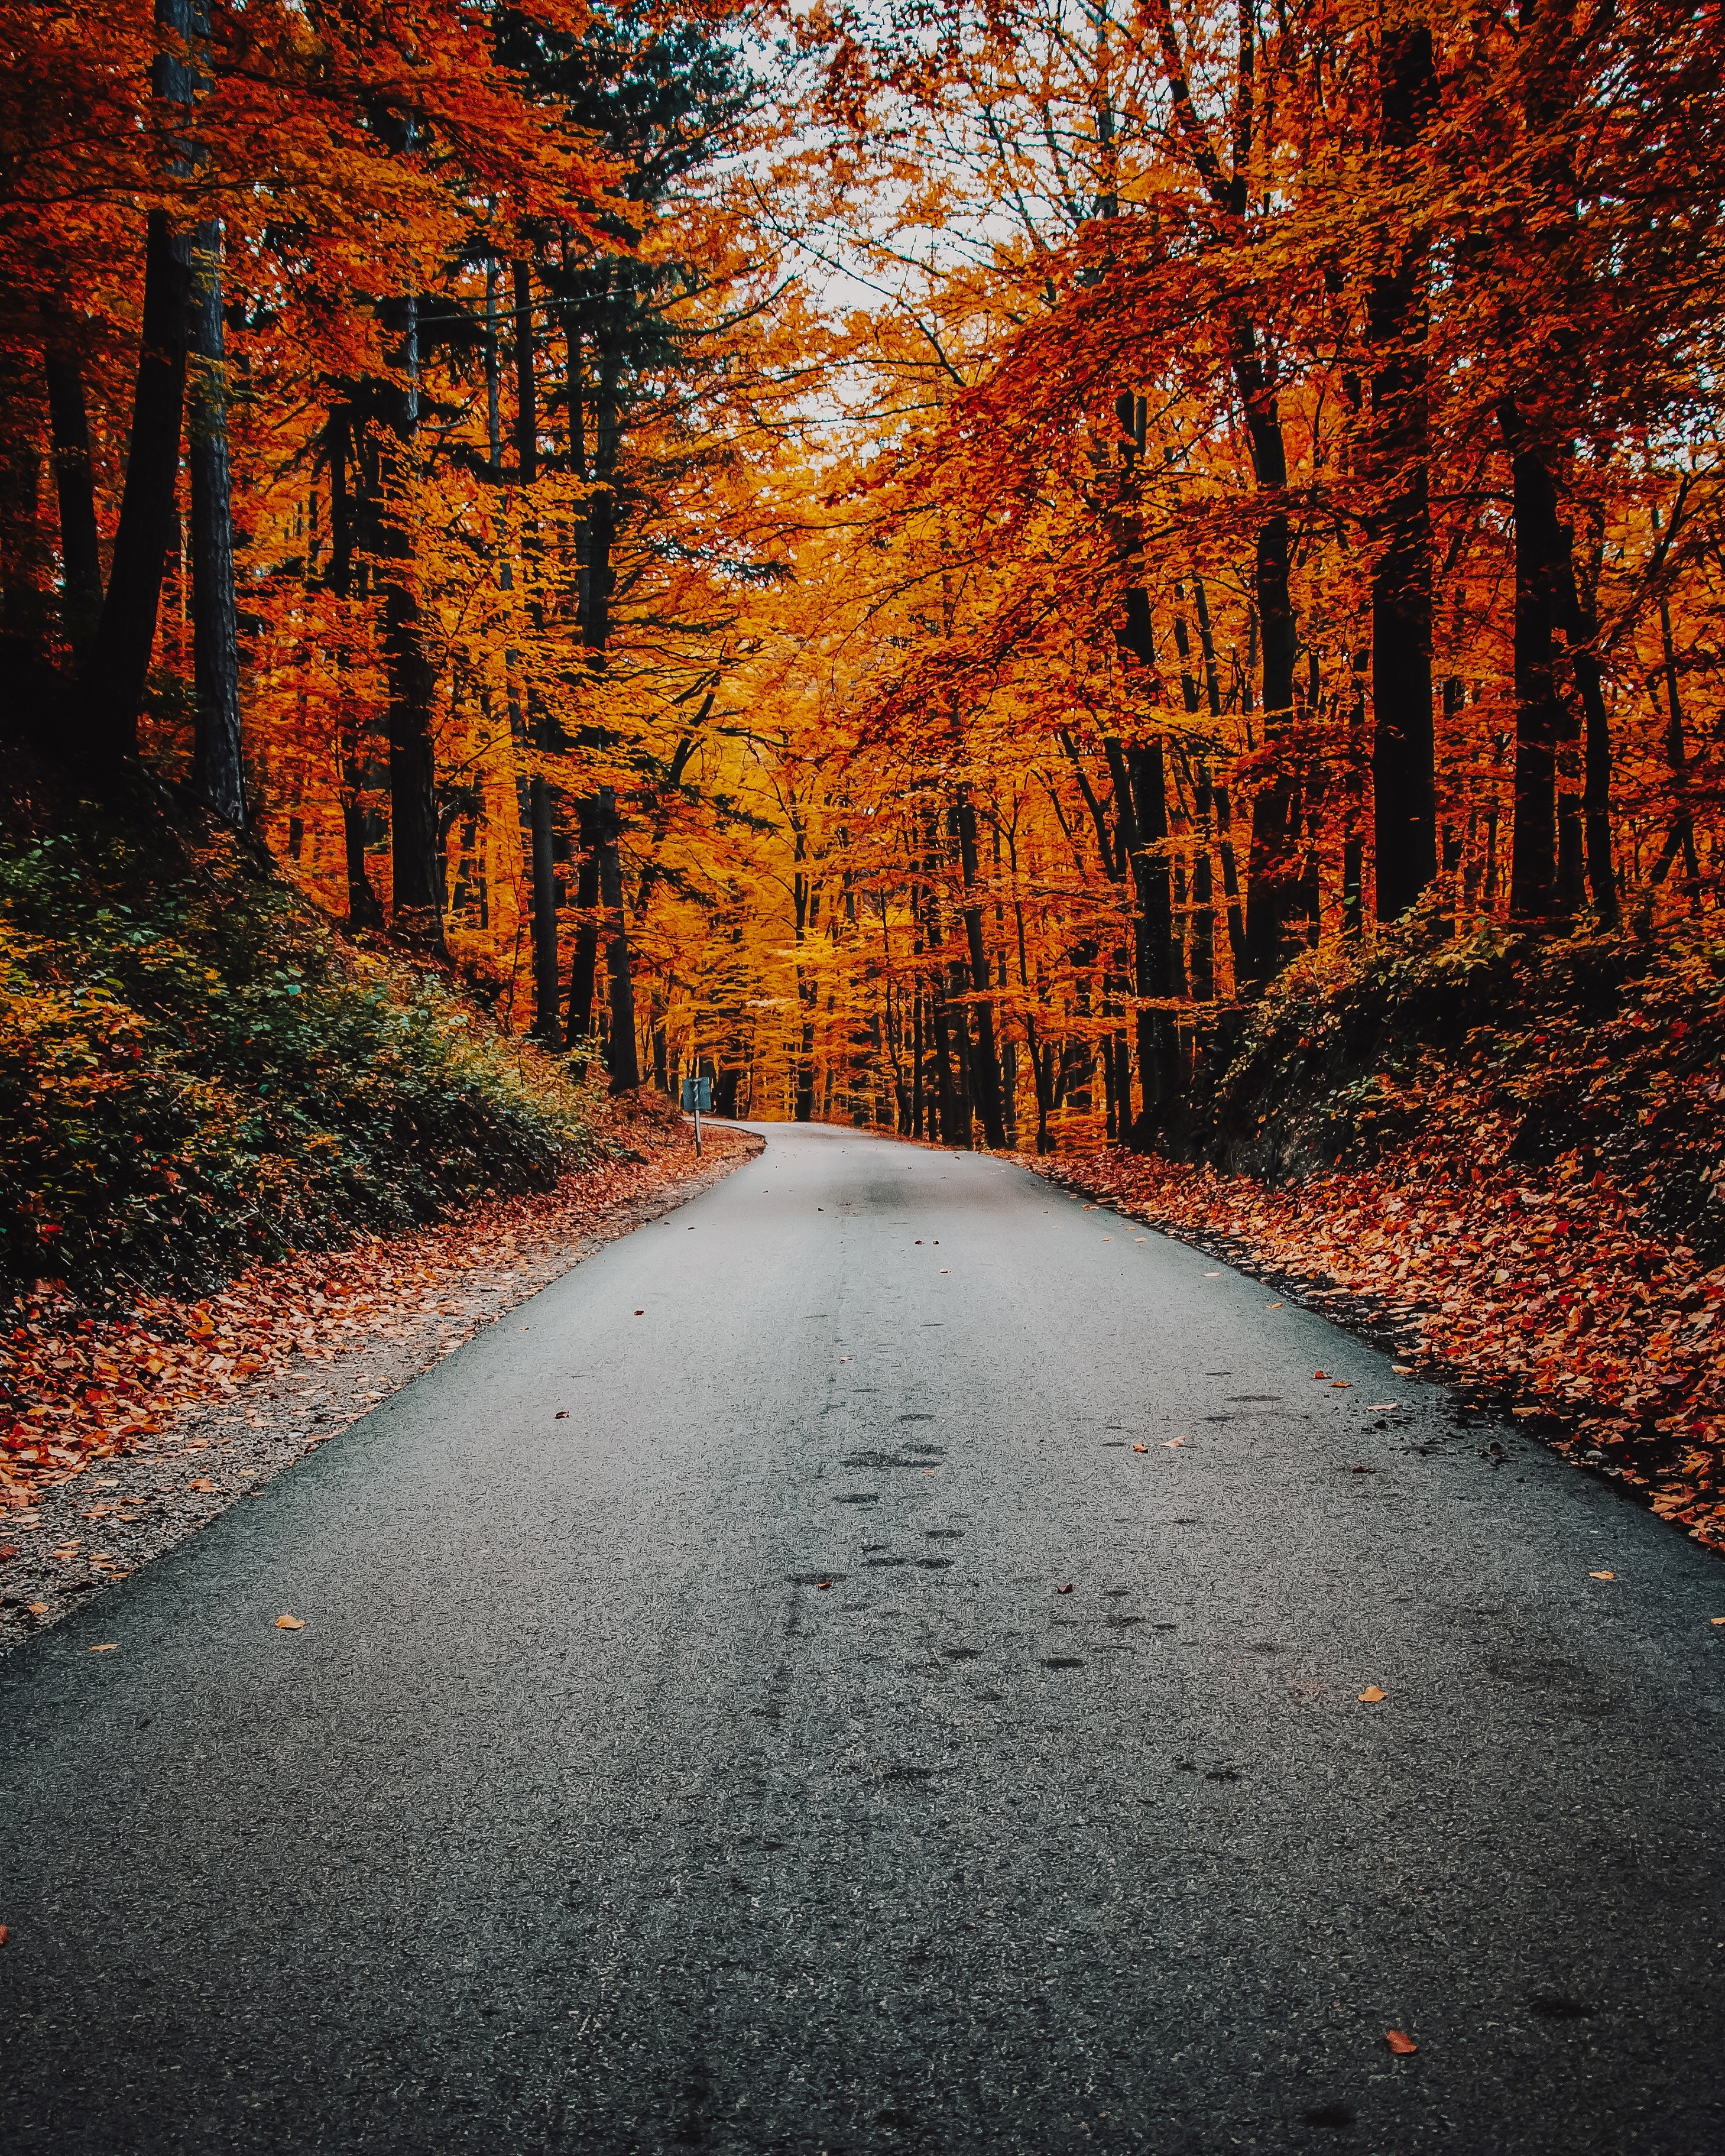 72585 download wallpaper Nature, Autumn, Road, Turn, Asphalt, Foliage screensavers and pictures for free